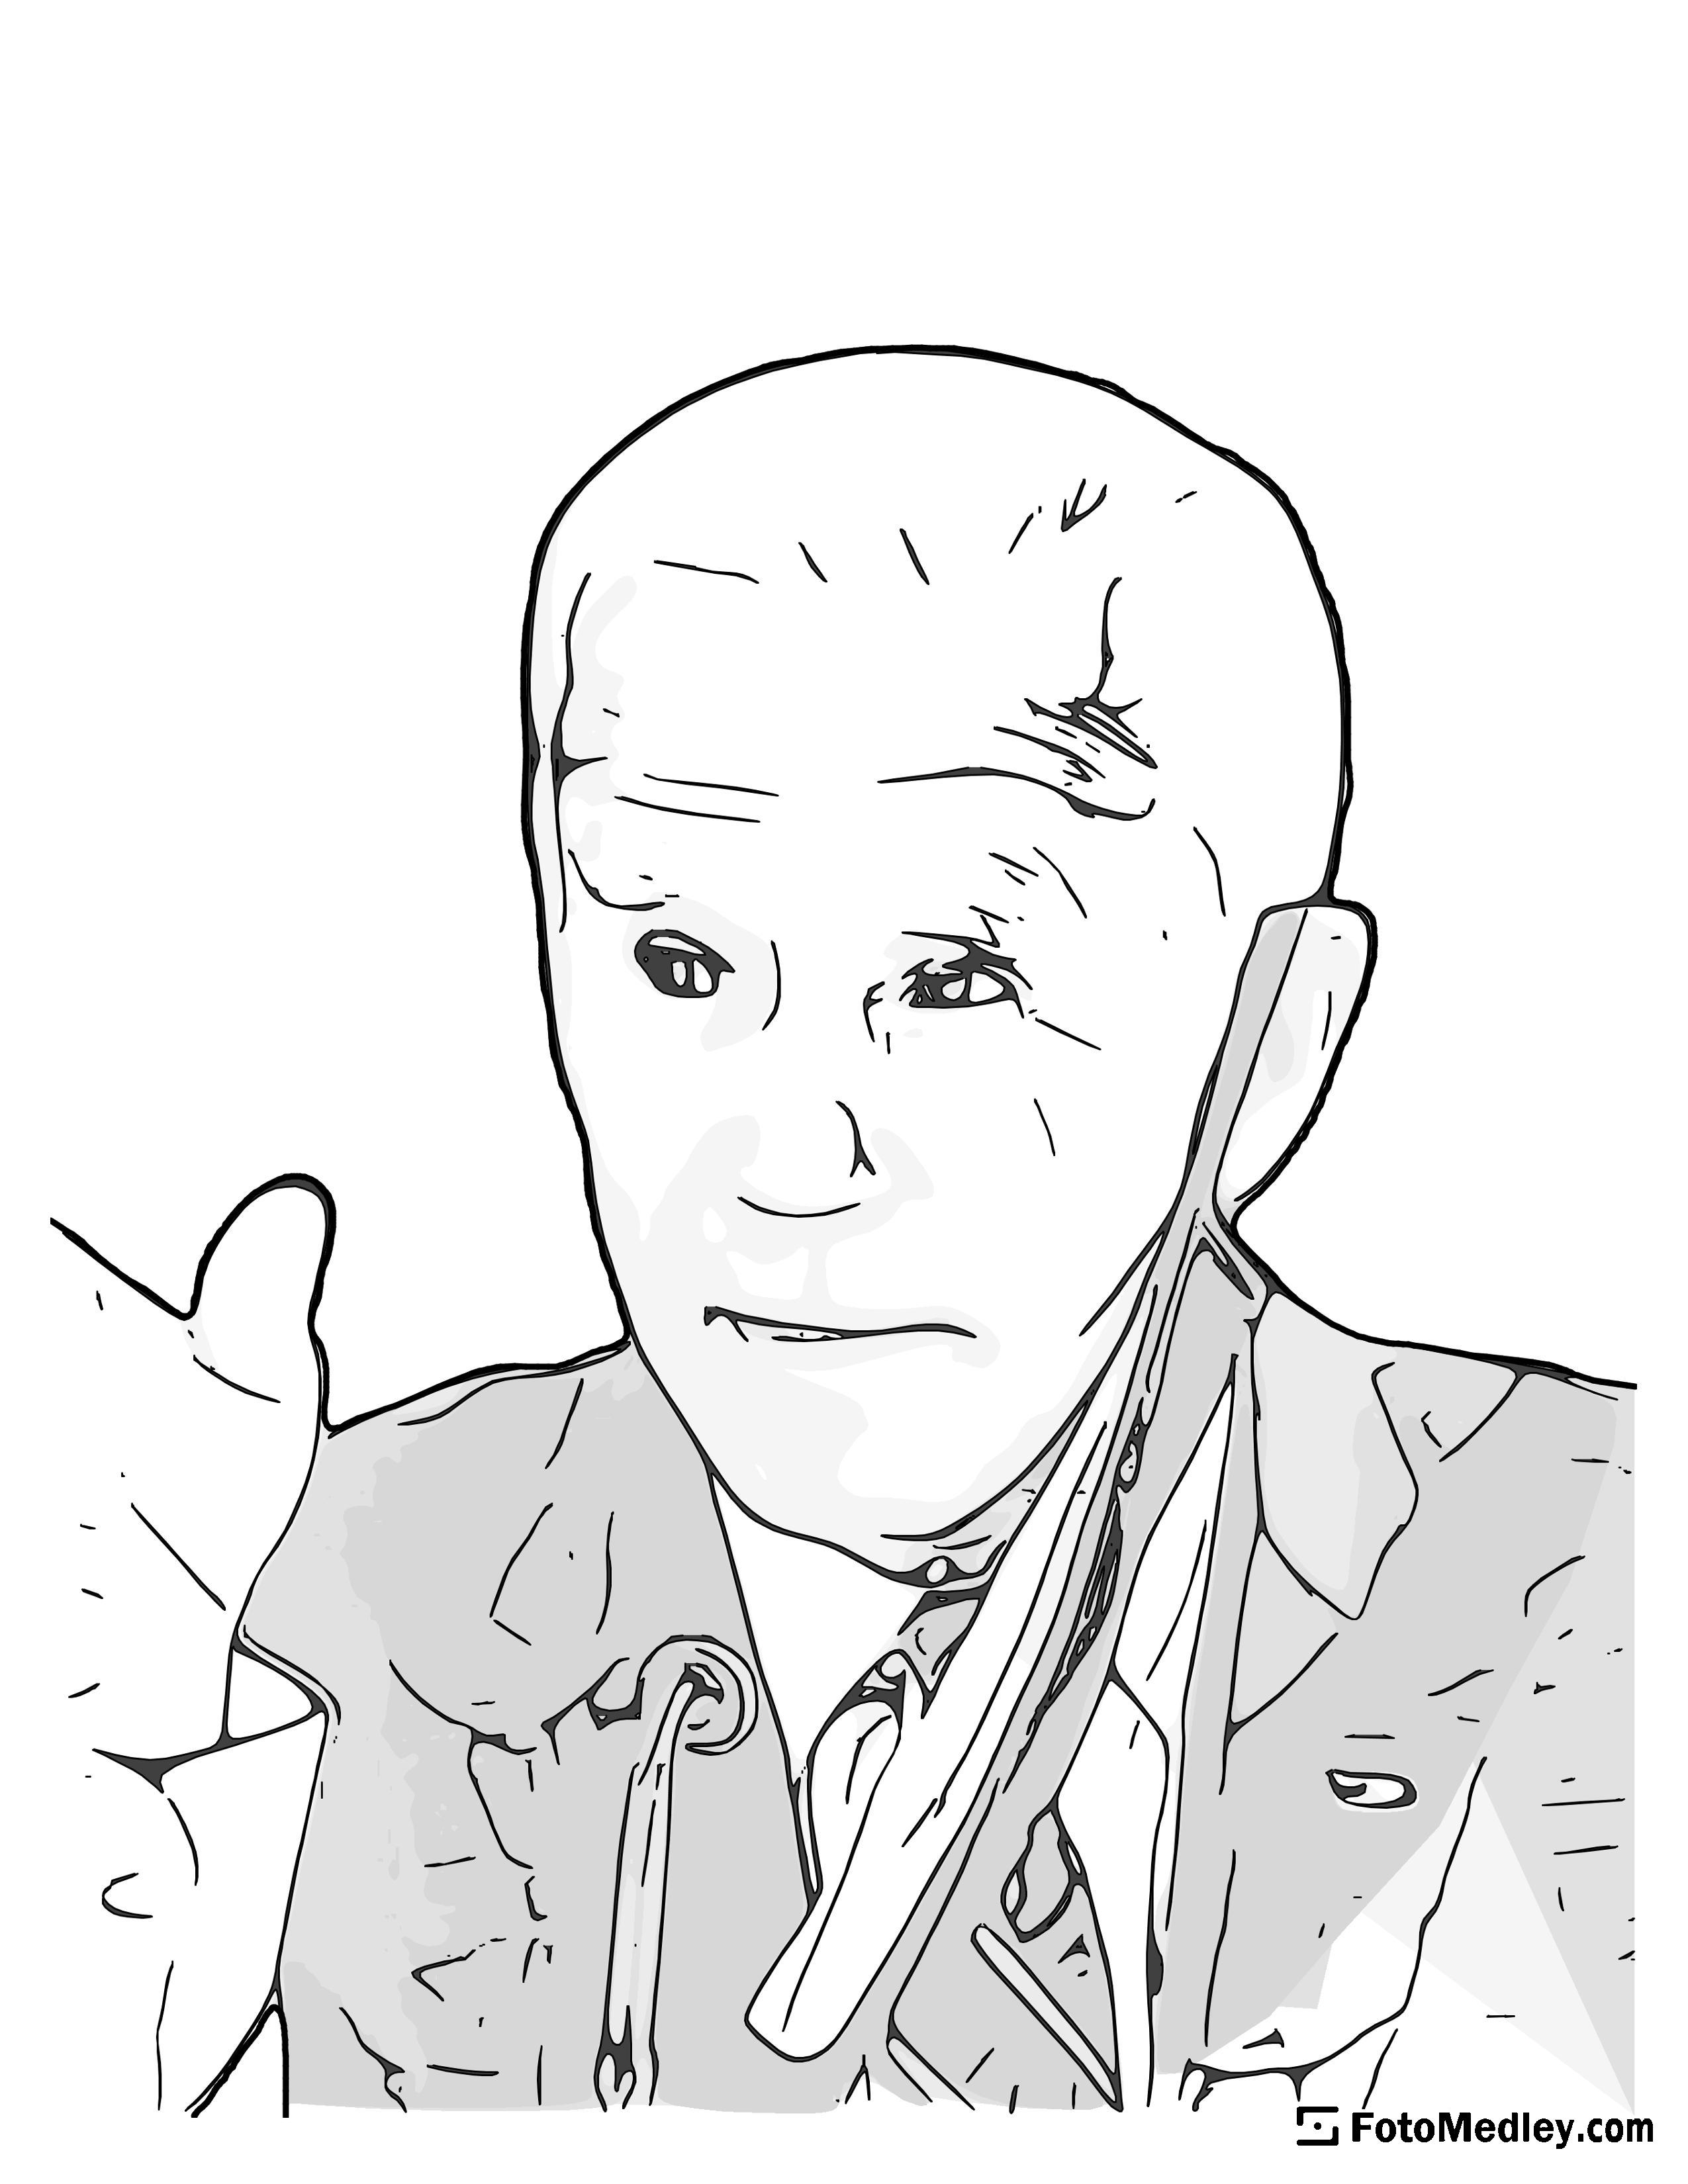 A cartoon style coloring sketch of Joseph R. Biden, 46th President of the United States. He is seen partially wearing a mask during the COVID-19 pandemic.